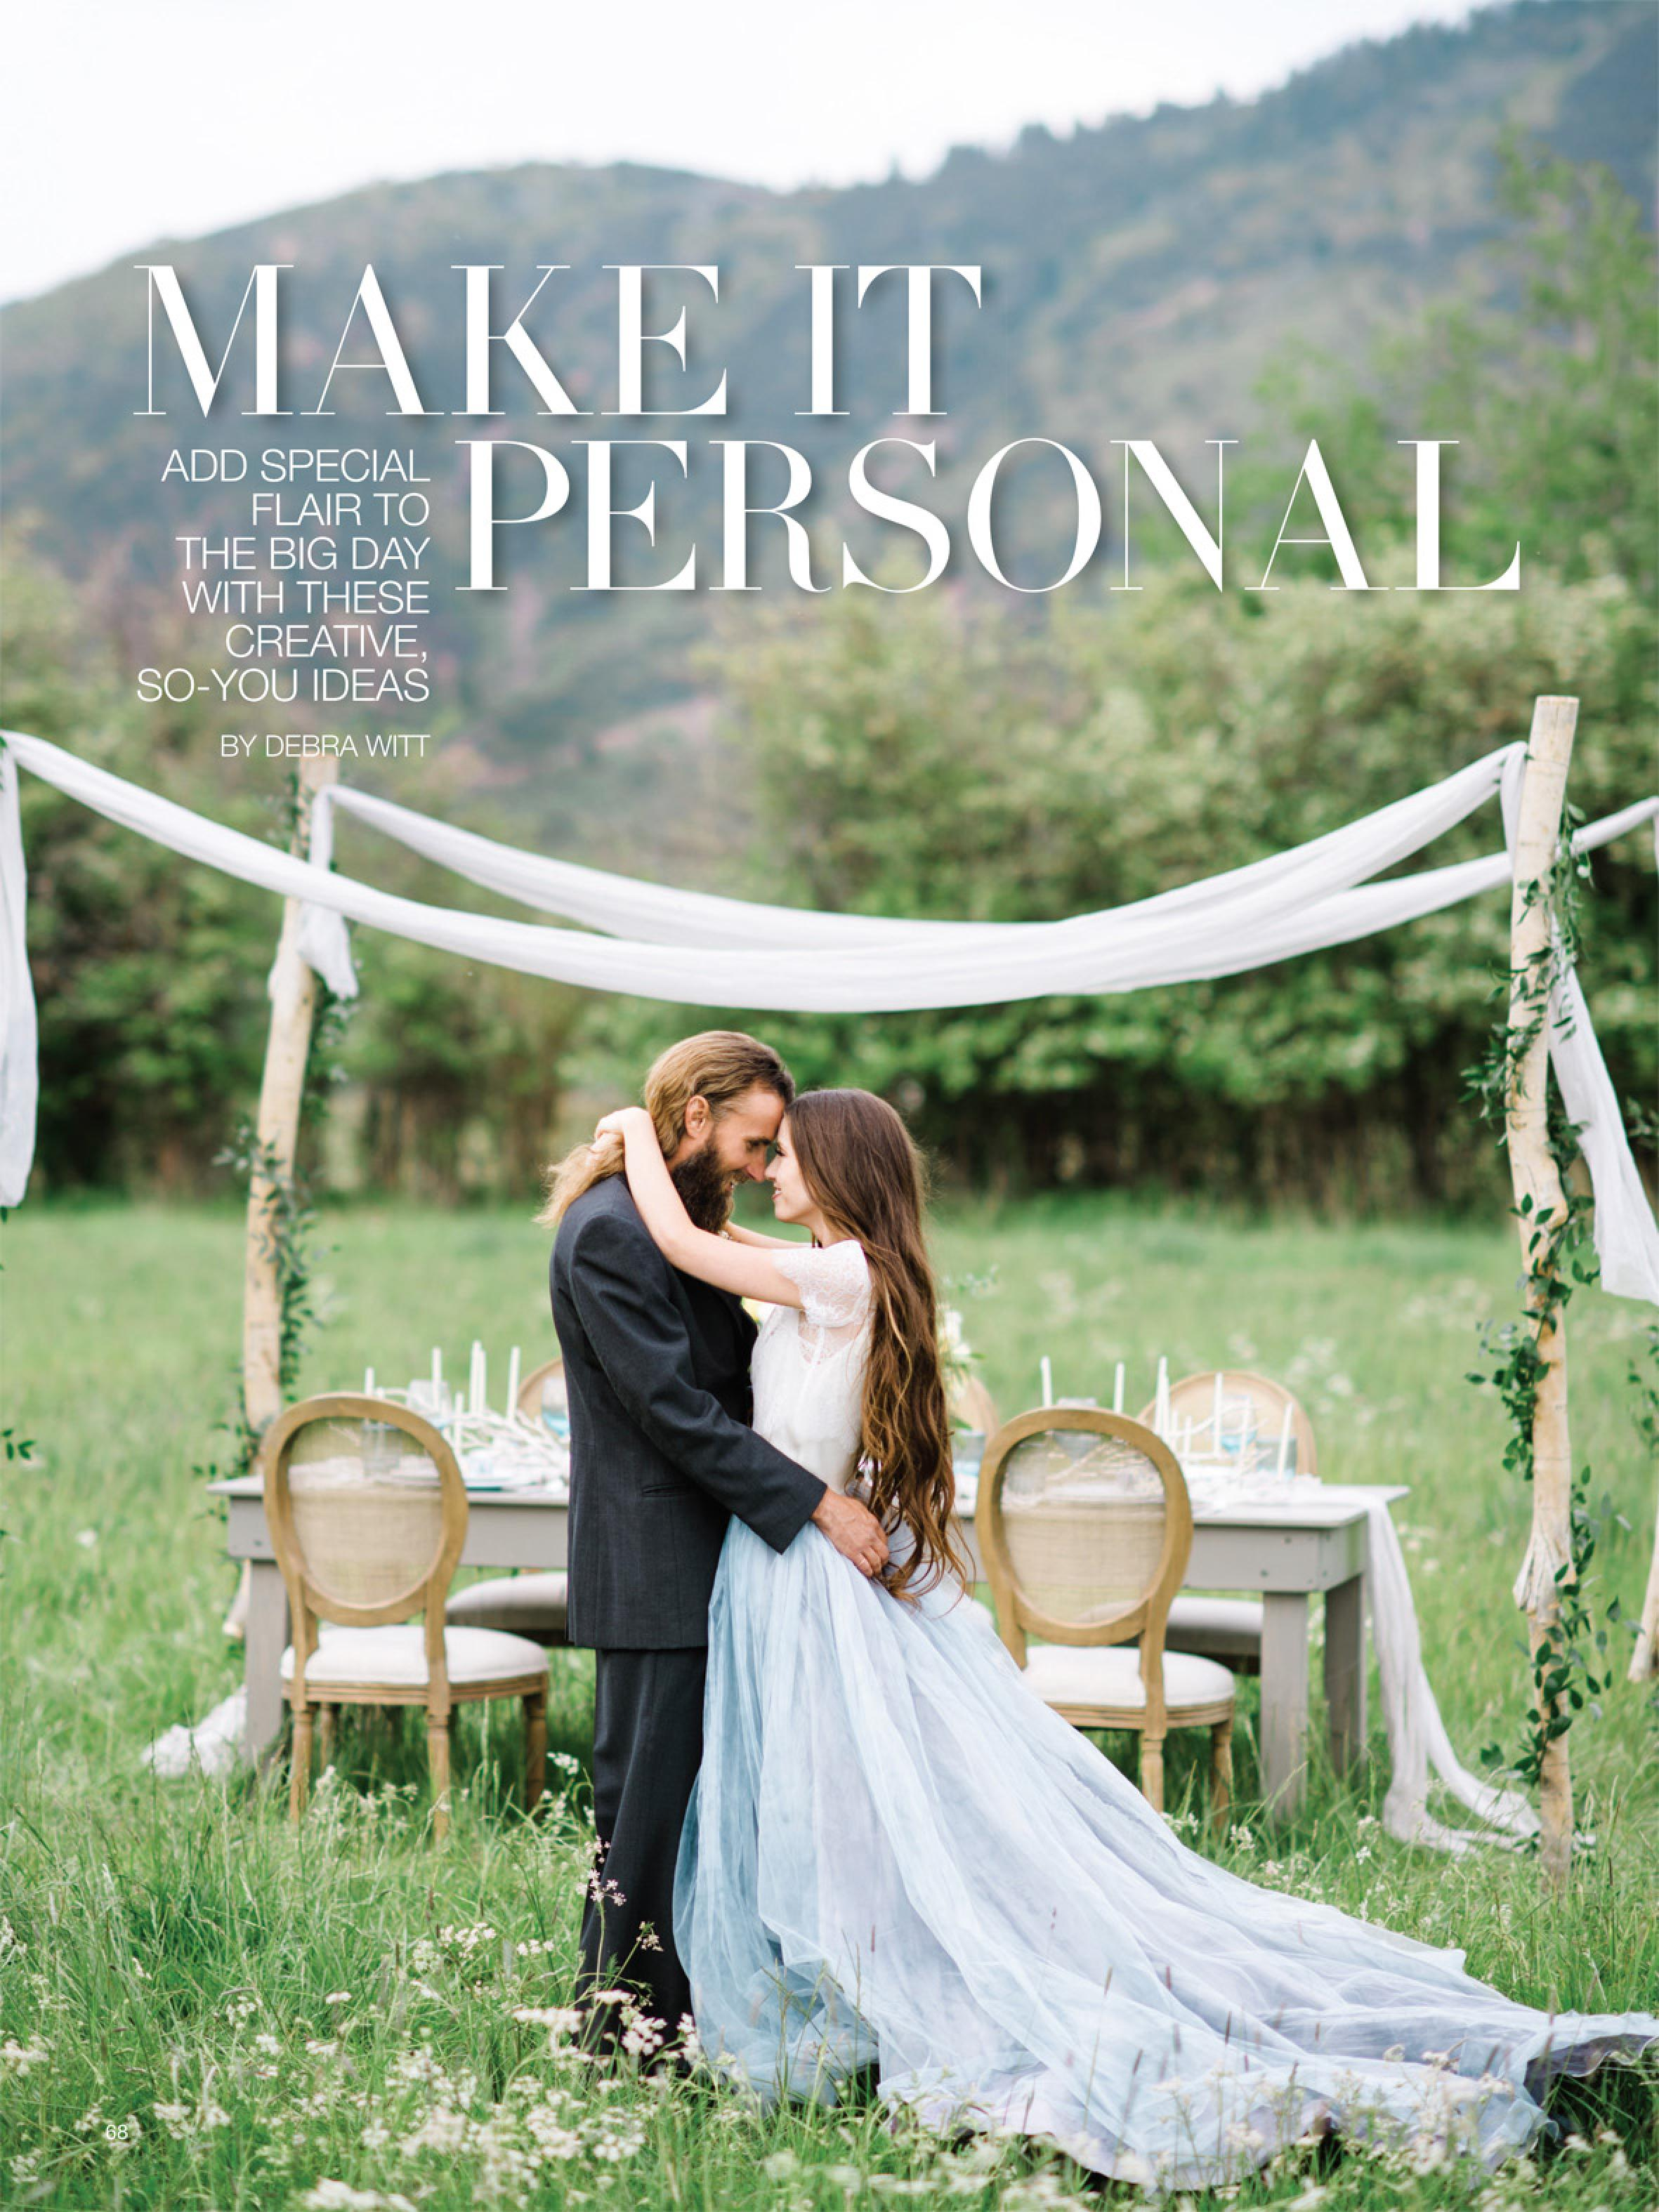 Bridal Guide Magazine Feature | Personalizing Your Wedding | Michelle Leo Events | Utah Event Planner and Designer